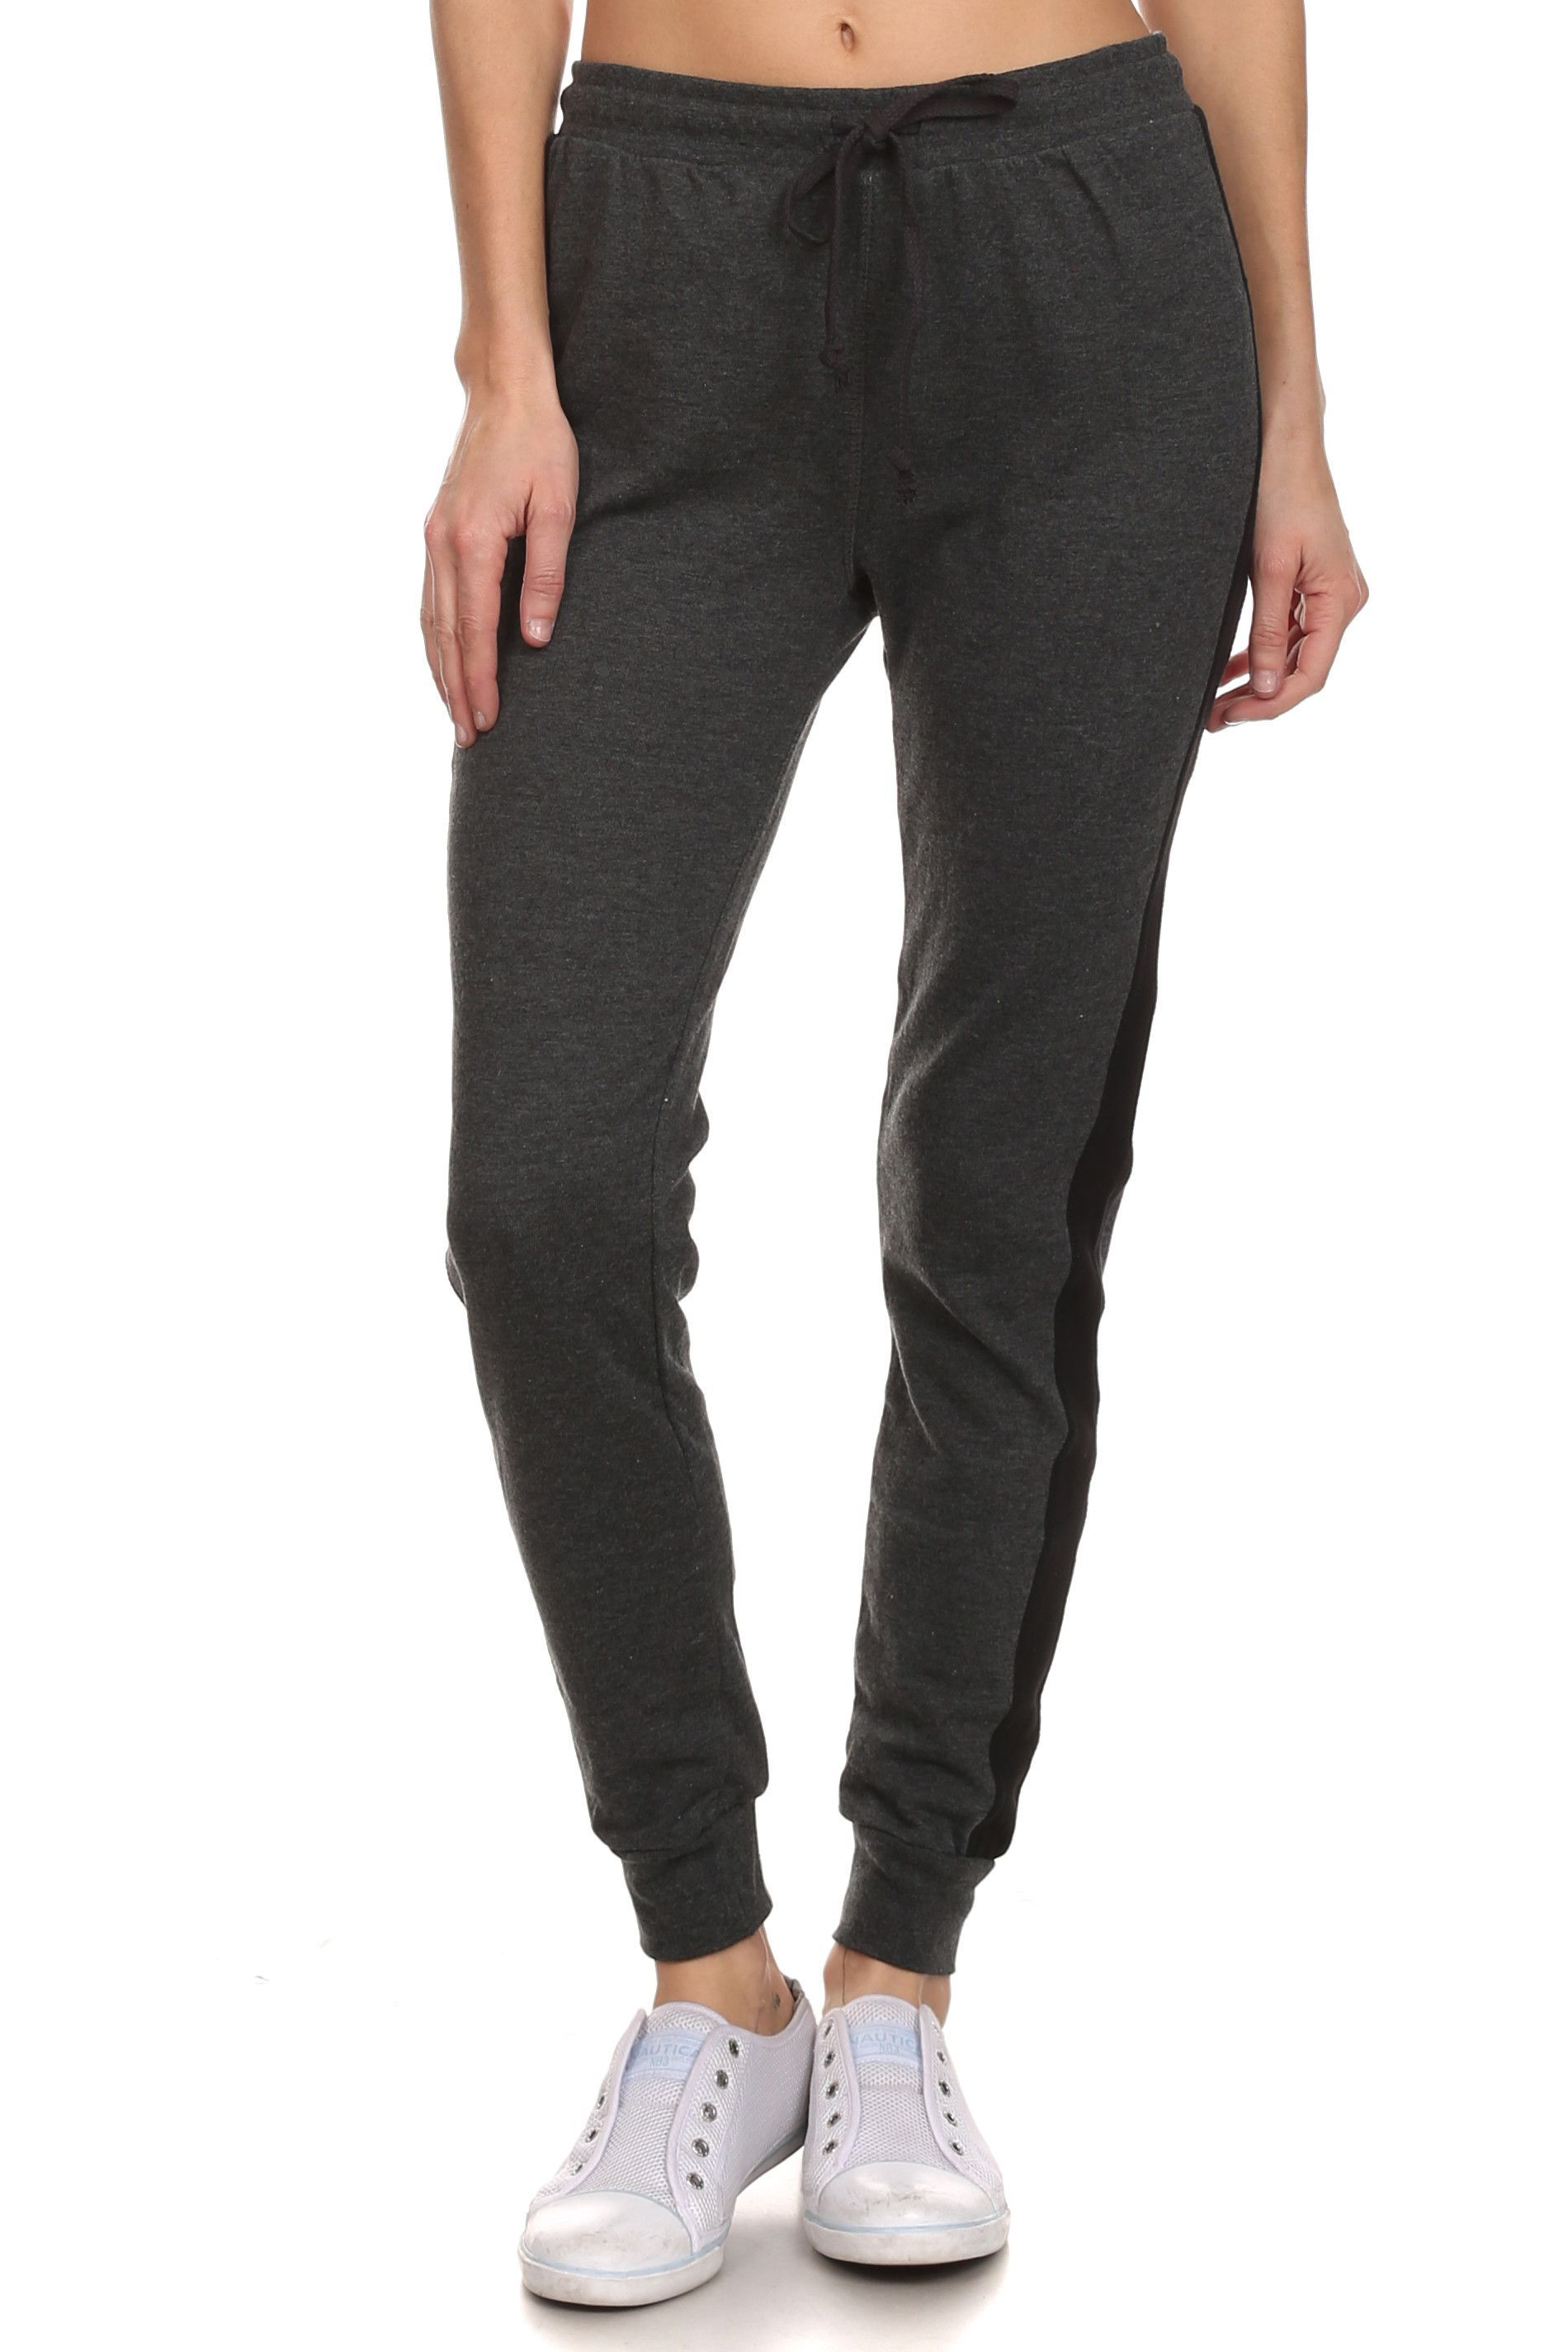 Women's Drawstring Joggers With Contrasting Color Side Stripe